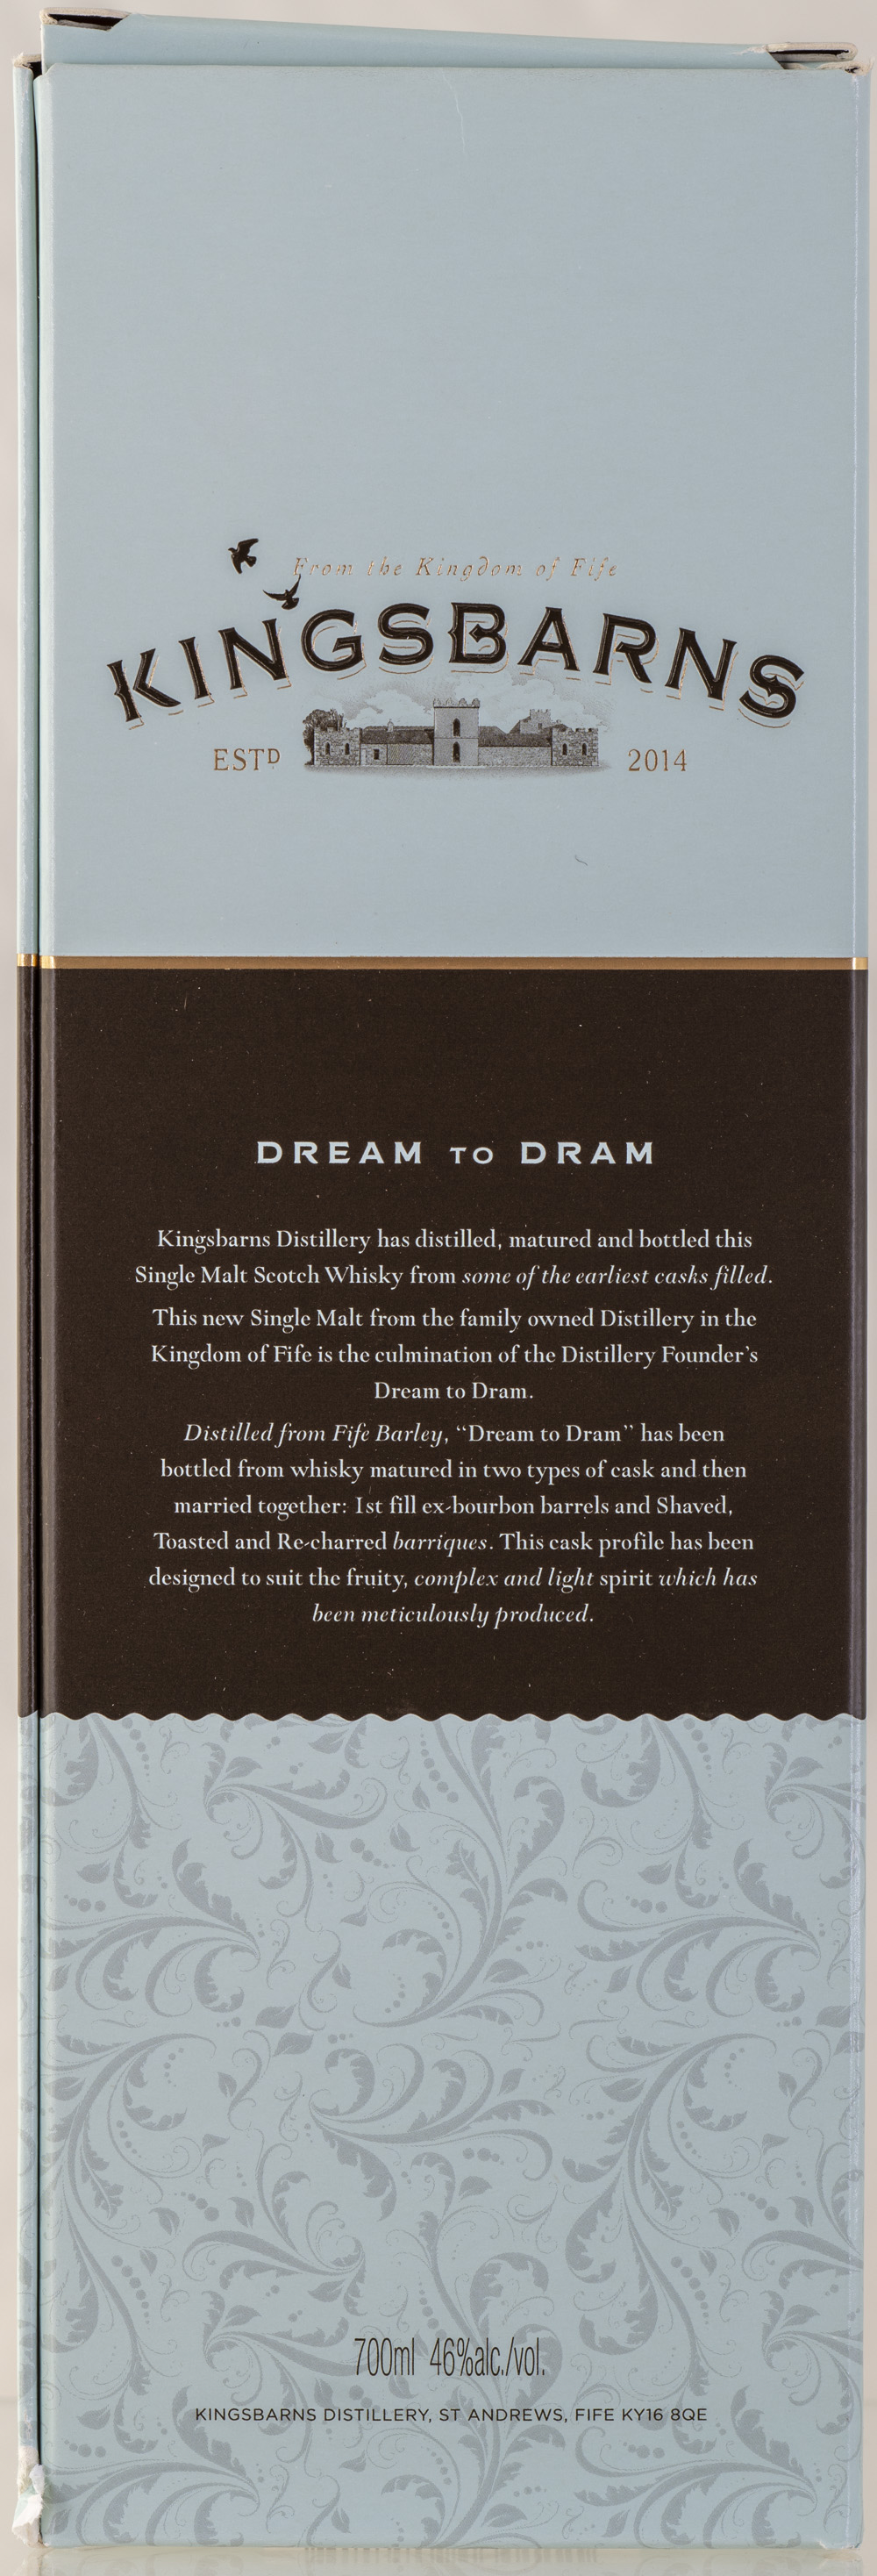 Billede: PHC_2229 - Kingsbarns Dream to Dram - box side.jpg